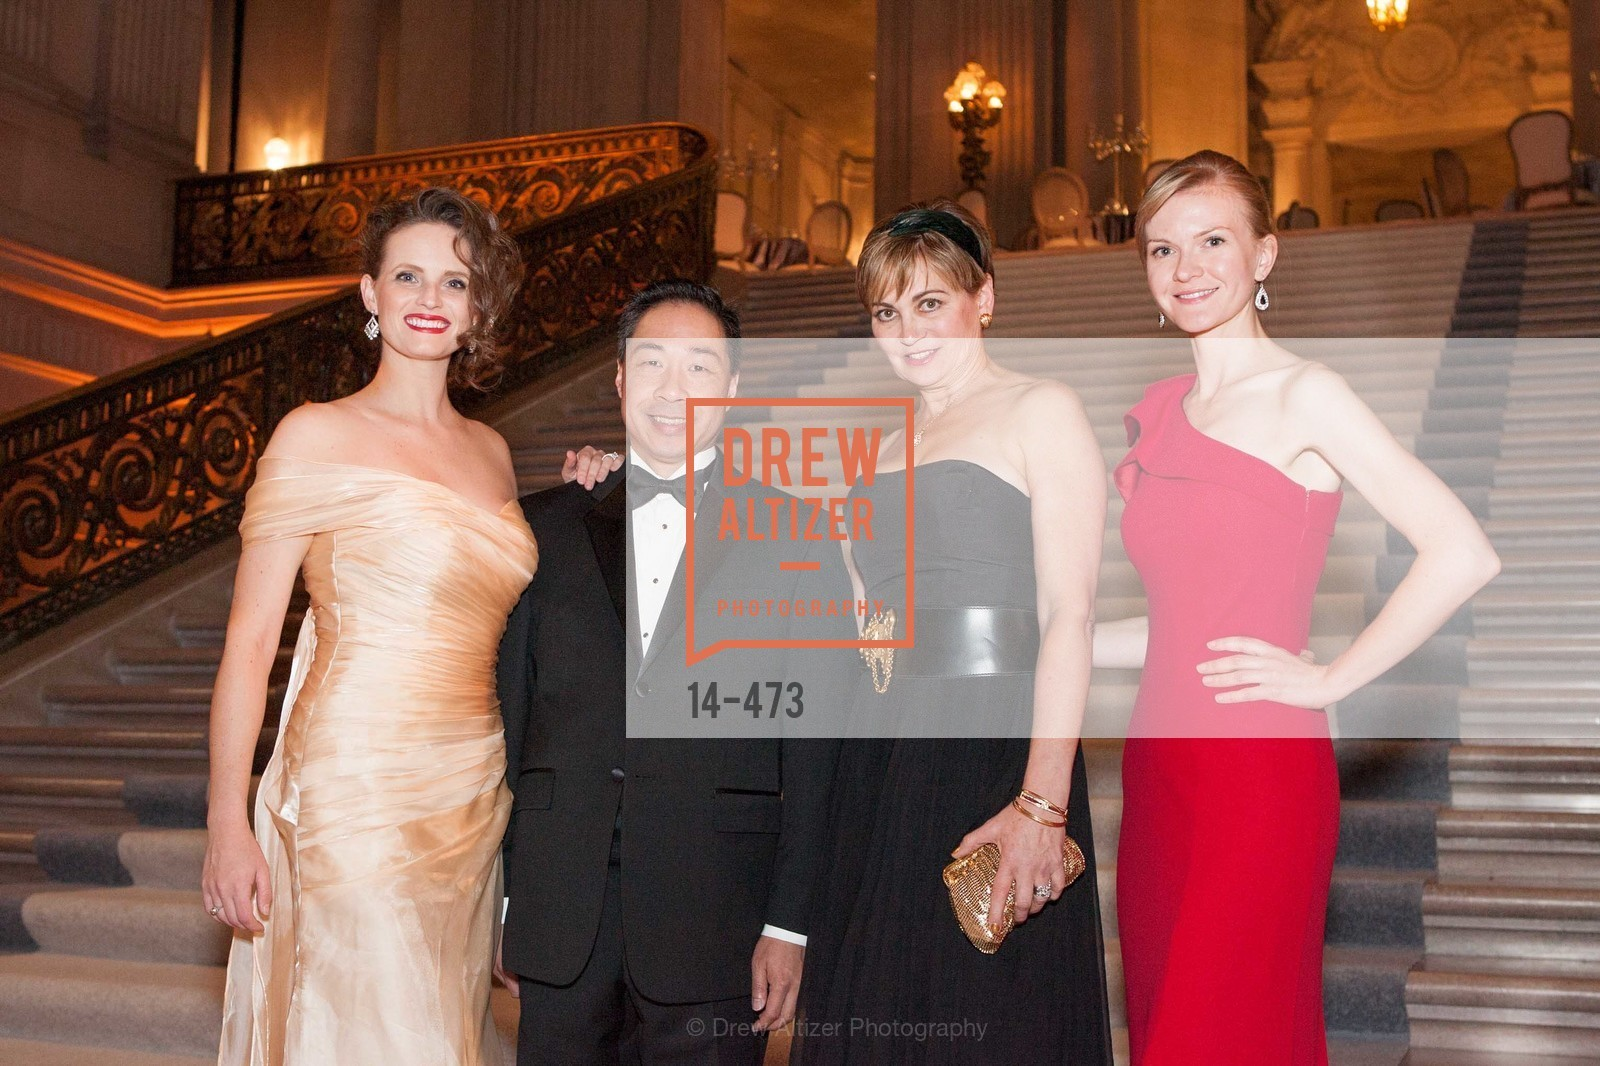 Alyson Blume, Wilson Yan, Jane Burkhard, Greer Goings, ENCORE! at San Francisco BALLET'S 2014 Season Opening Night Gala, US. US, January 22nd, 2014,Drew Altizer, Drew Altizer Photography, full-service agency, private events, San Francisco photographer, photographer california